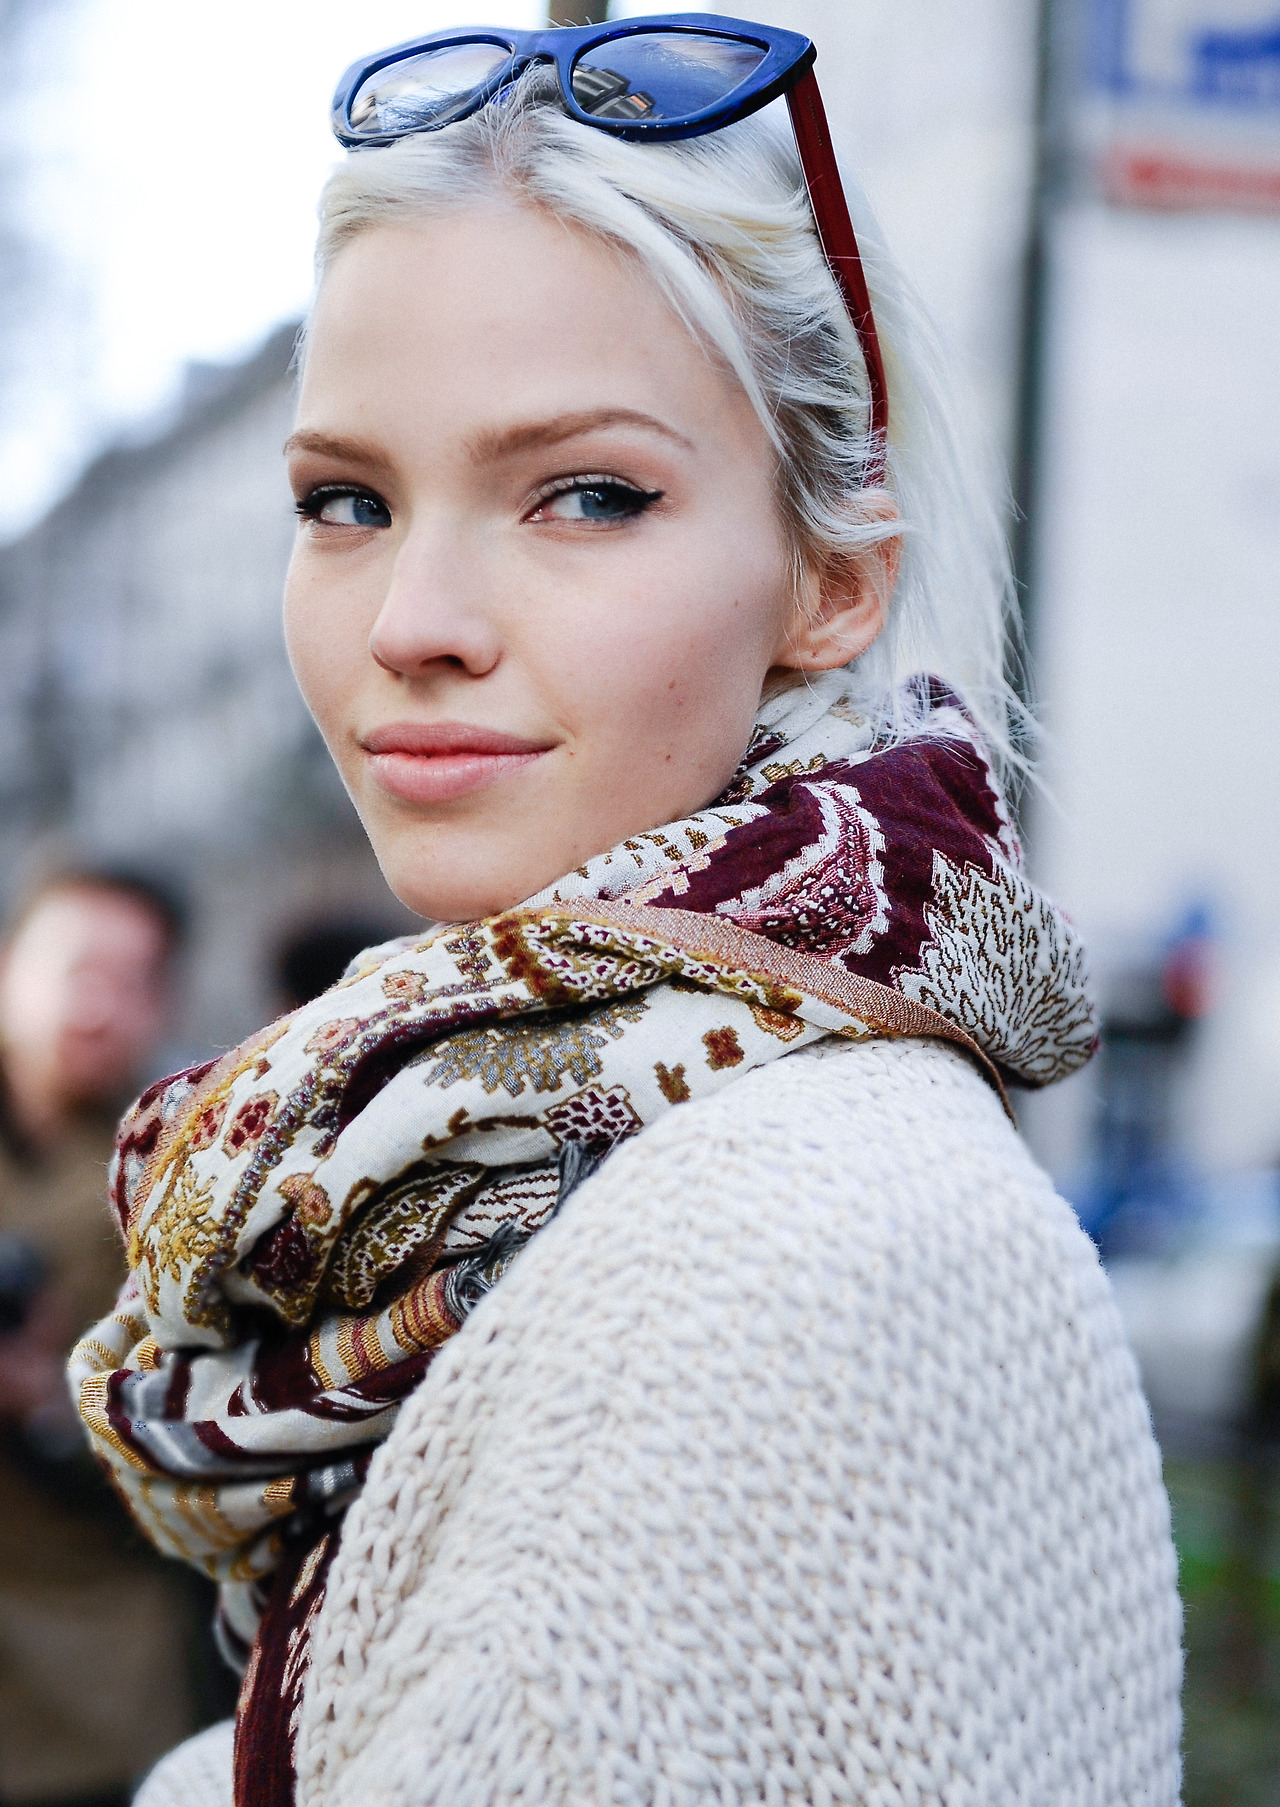 Model Sasha Luss Street Style Photography By Giacomo Cabrini